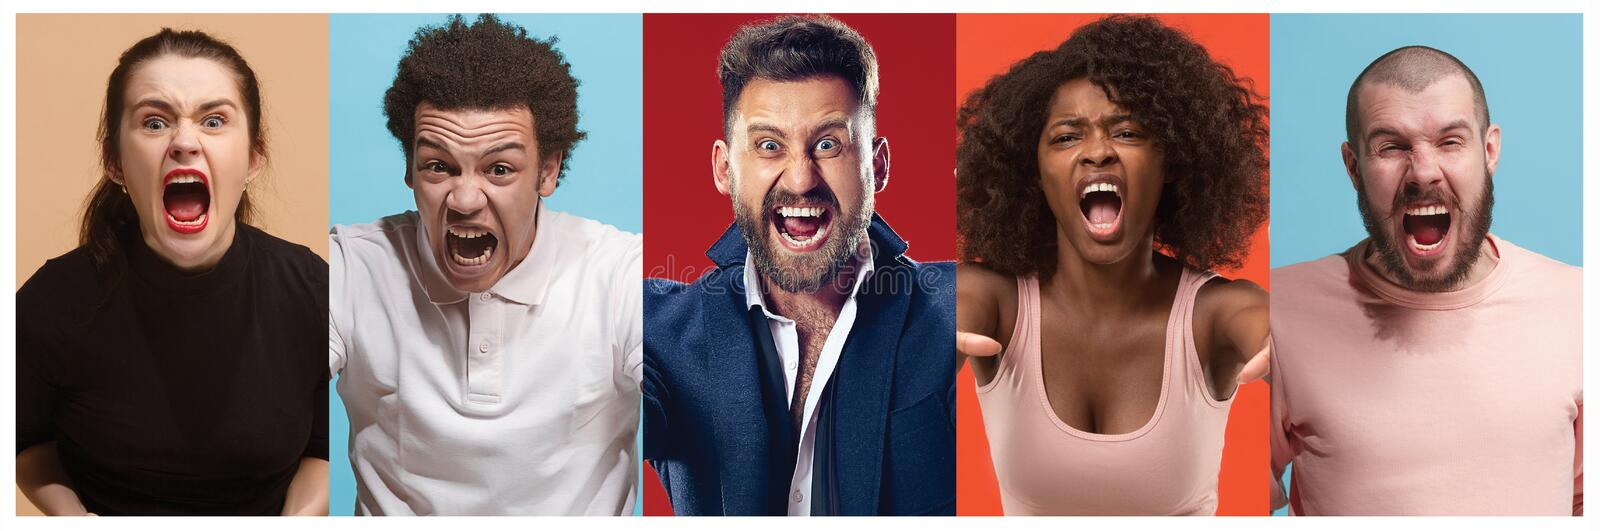 Angry people screaming. The collage of different human facial expressions, emotions and feelings of young men and women. The men and women in profile isolated stock photo